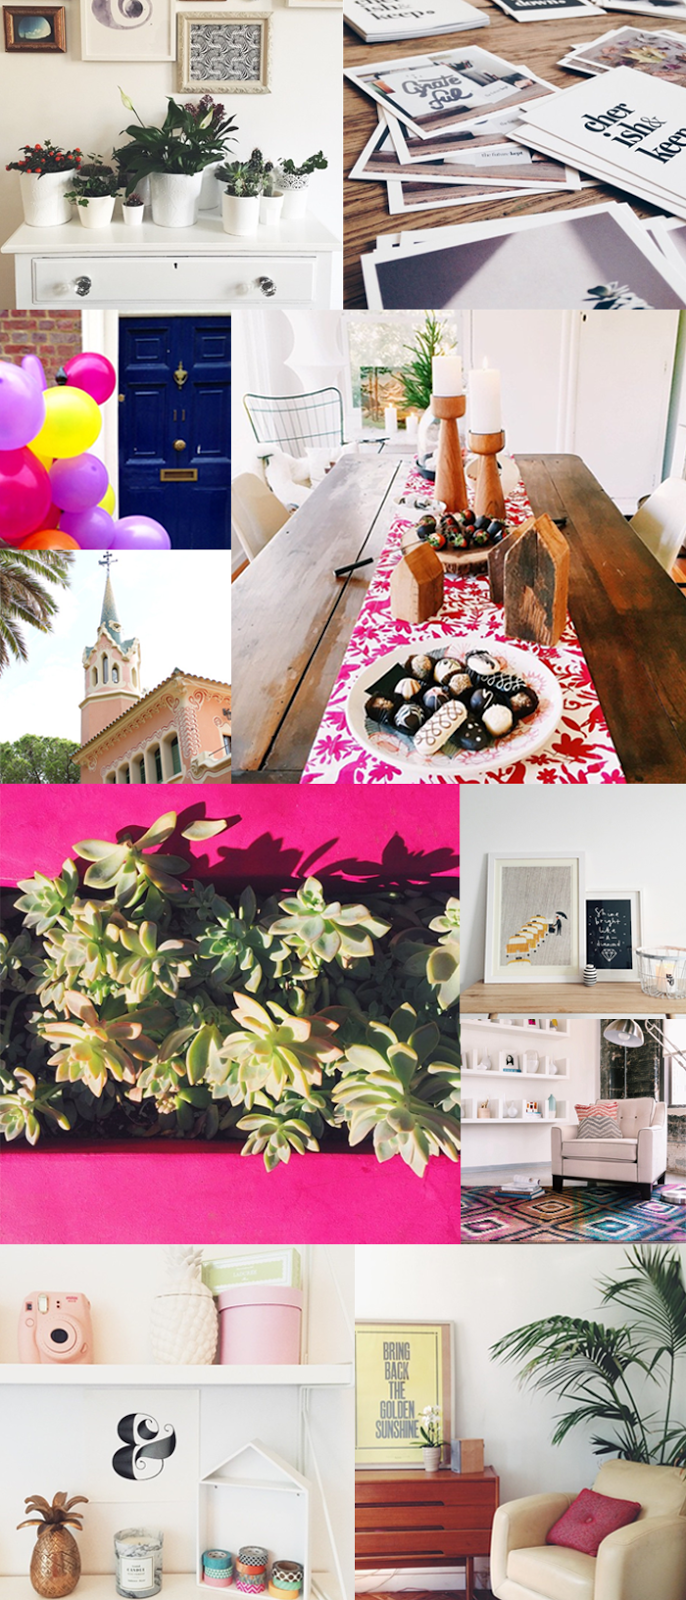 FIVE INSTAGRAM ACCOUNTS FOR INTERIOR LOVERS